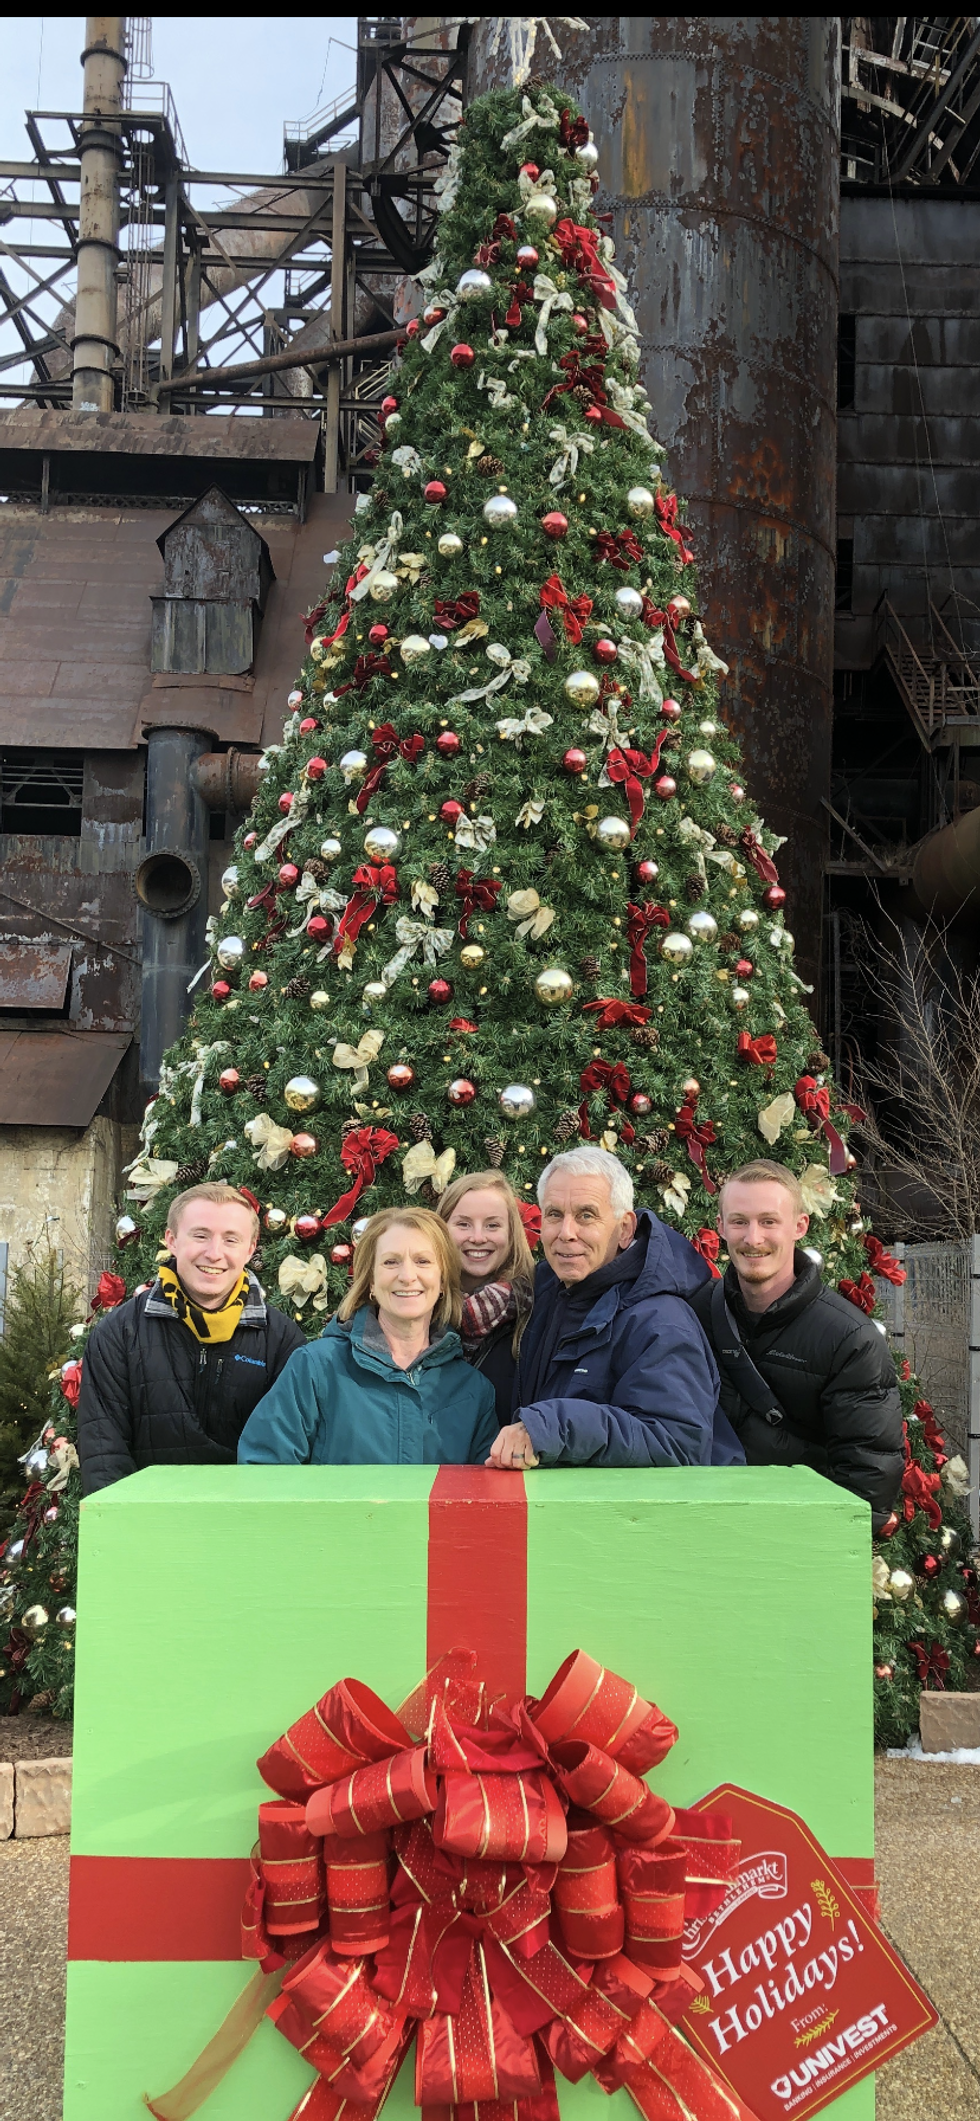 Colin Romaglia (left) stands in front of a Christmas Tree with his family in Pennsylvania.